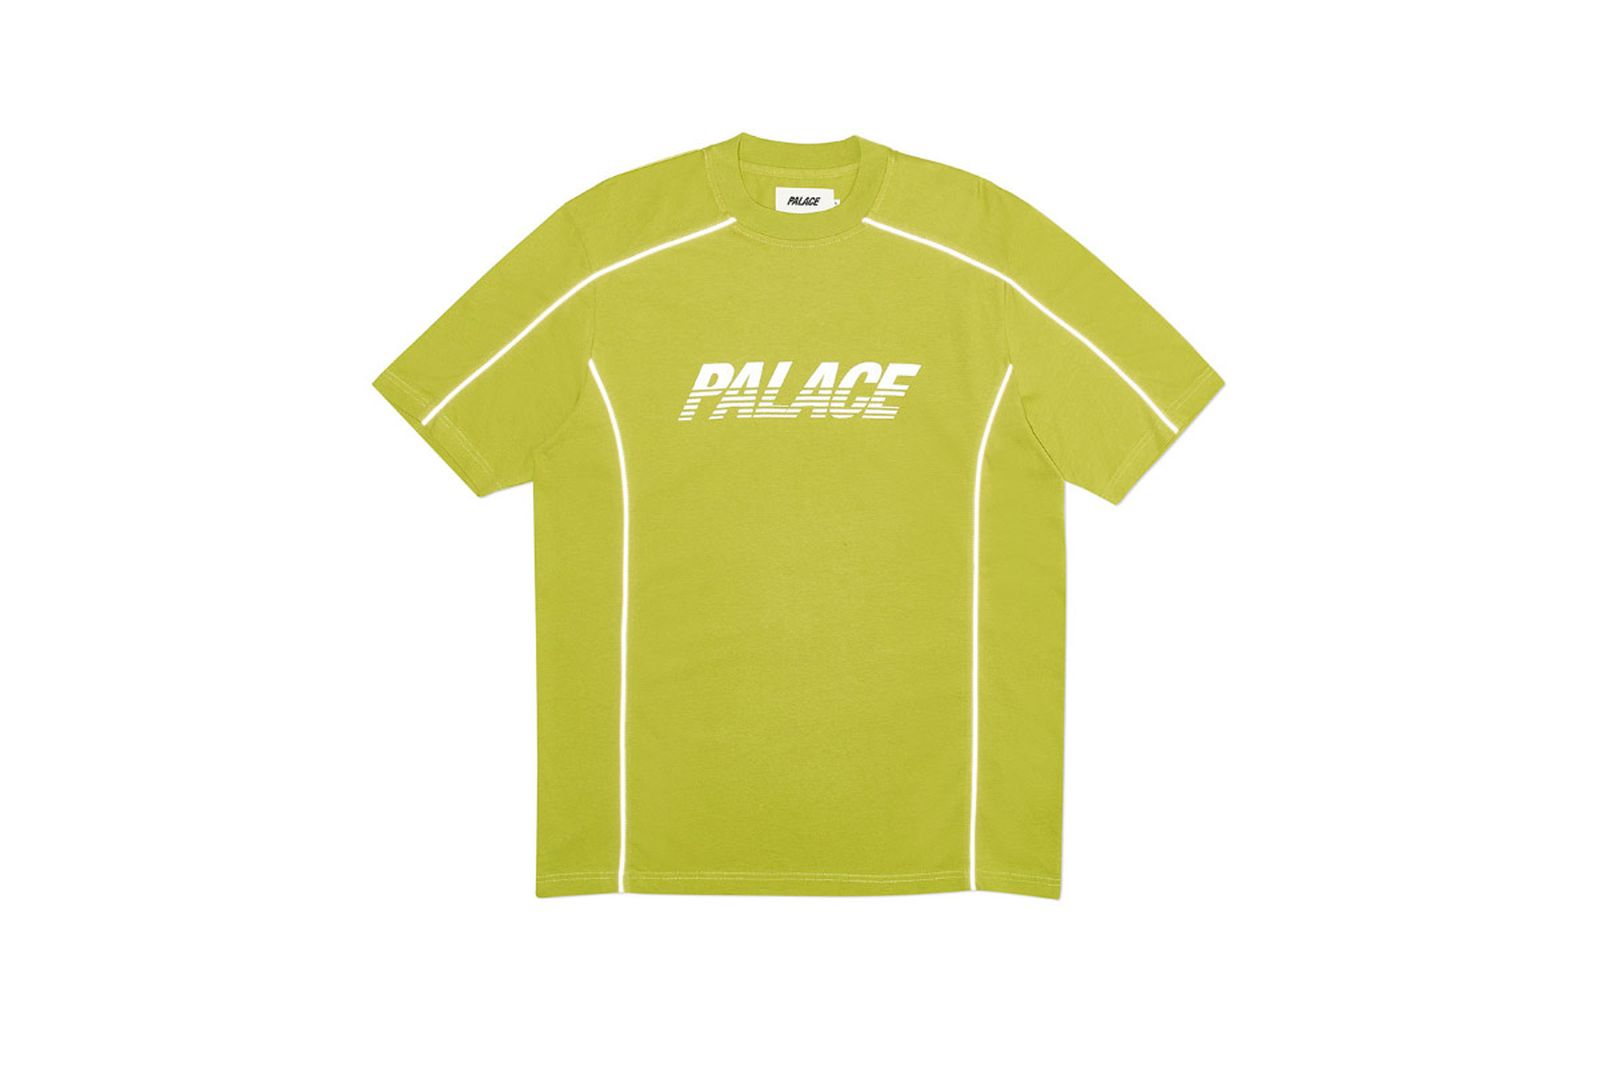 Palace 2019 Autumn T Shirt Pimped green front fw19